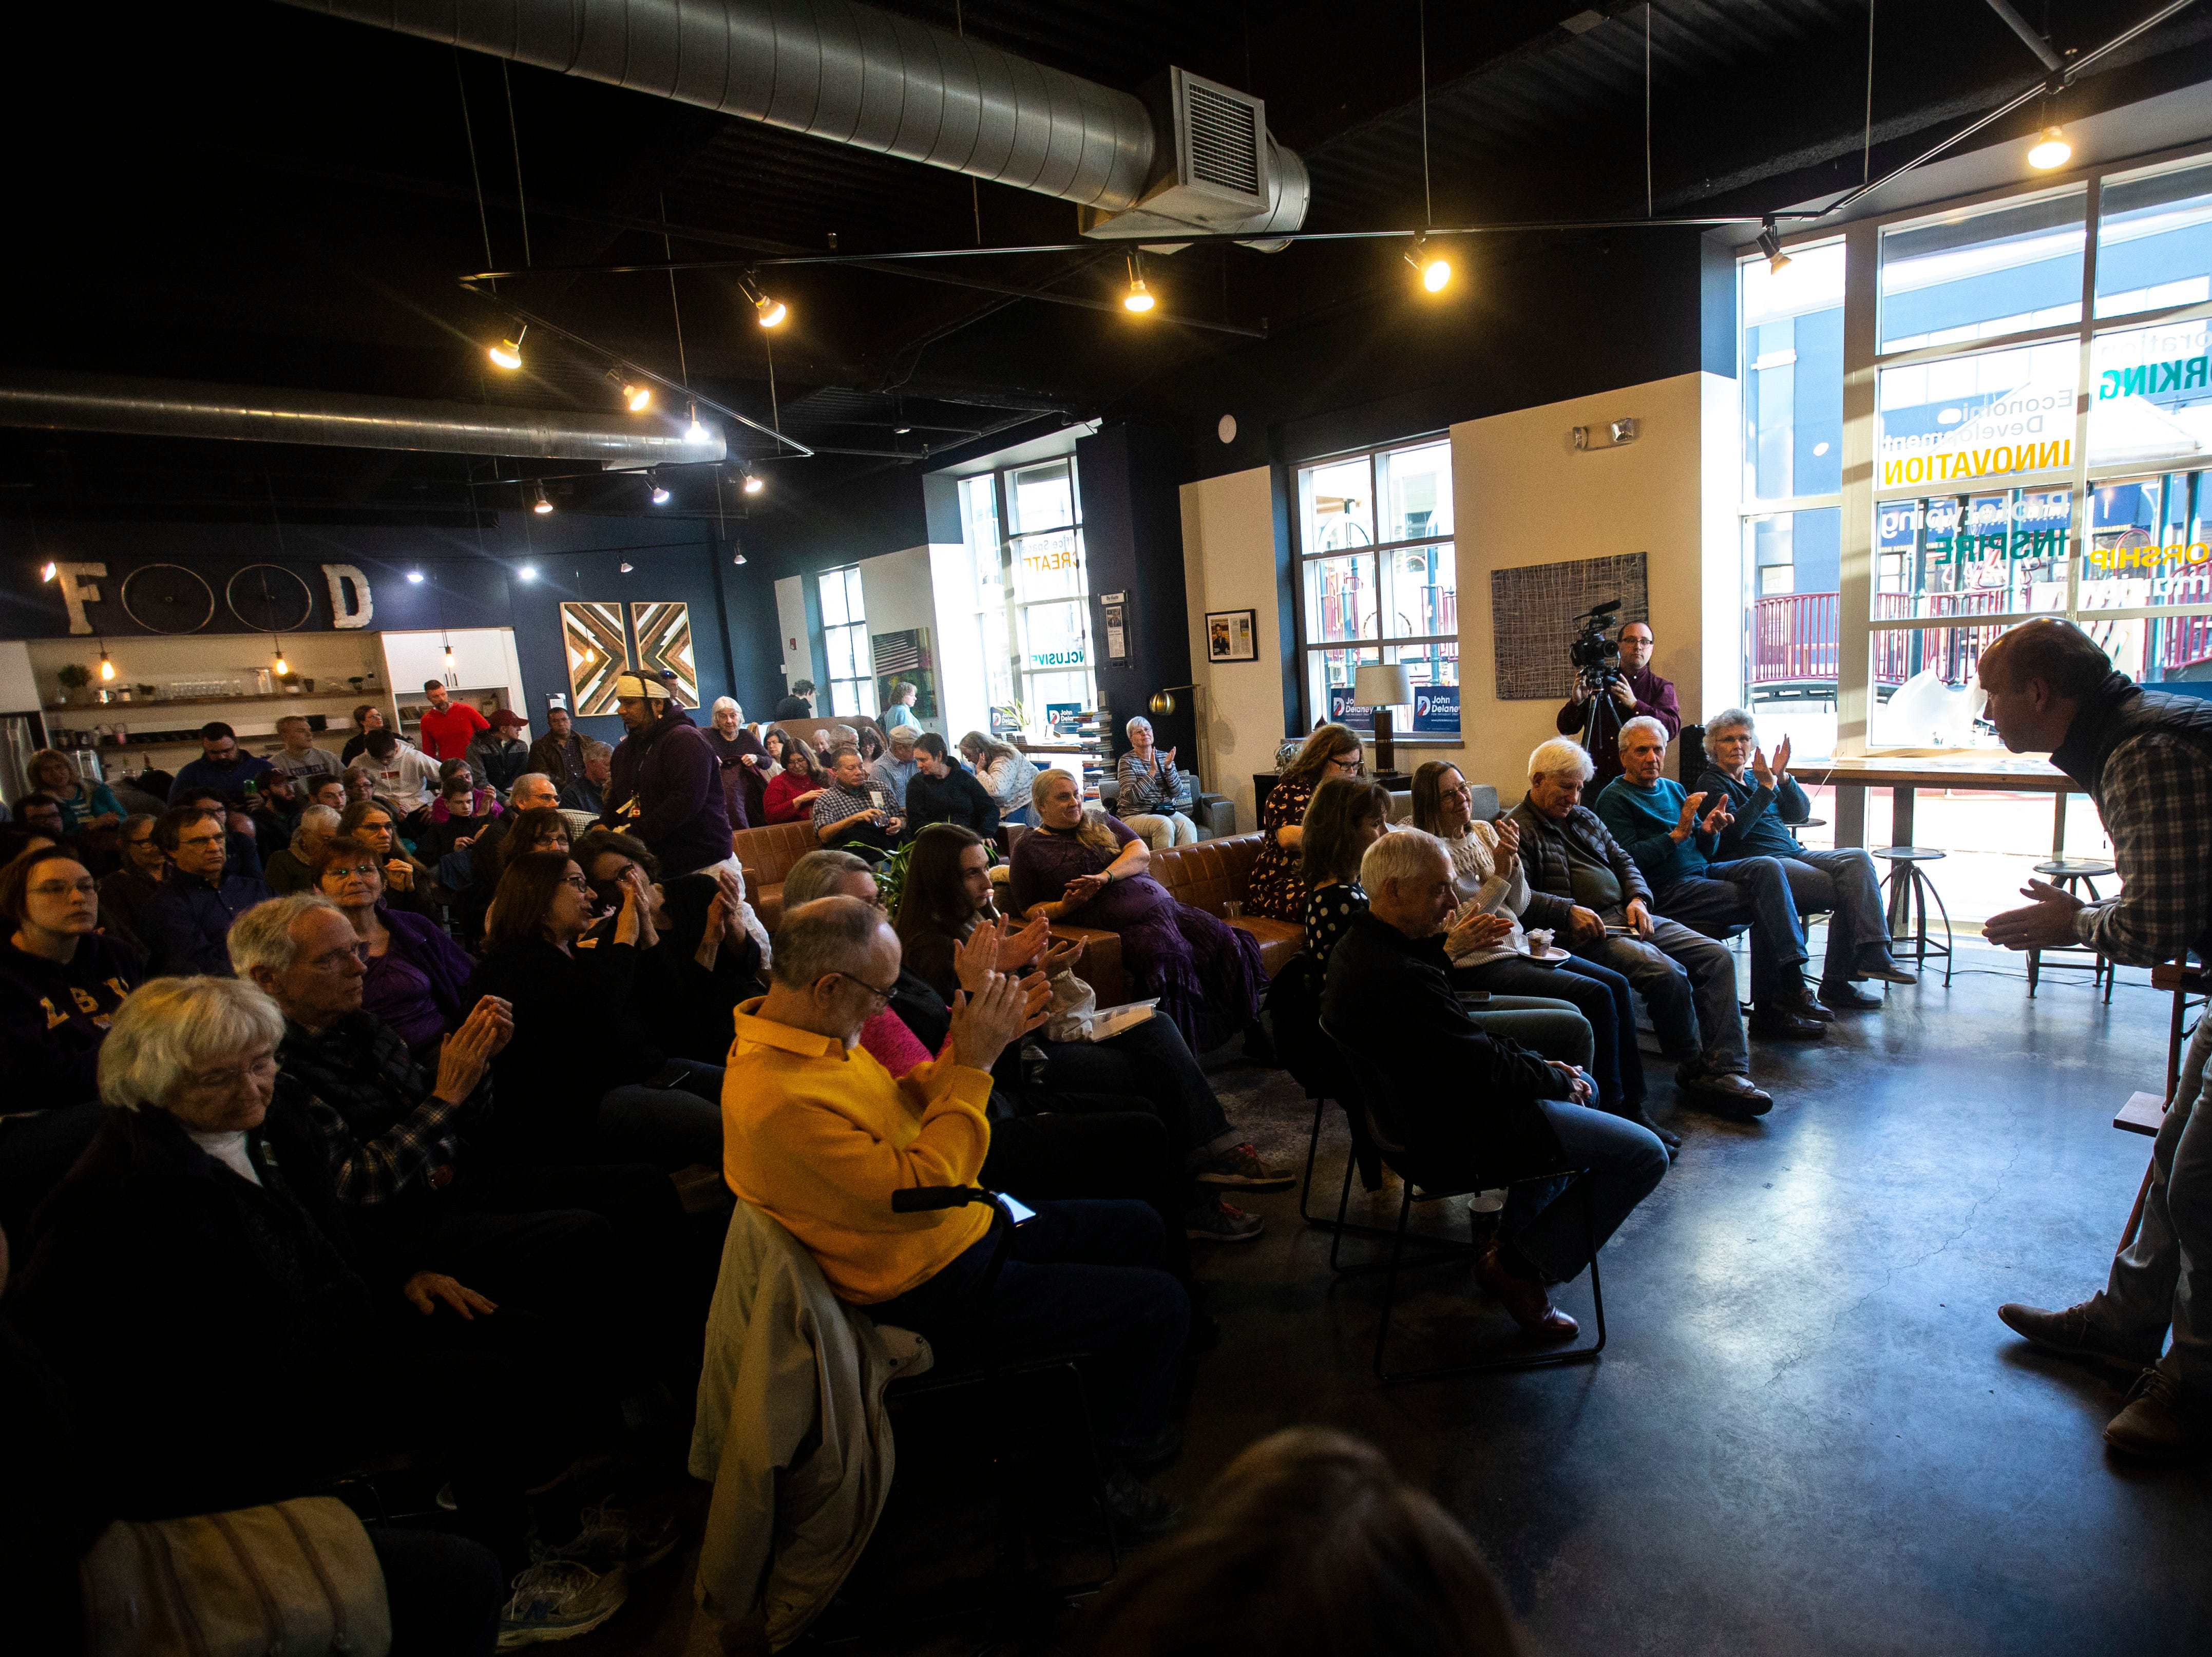 Democratic presidential candidate John Delaney is acknowledged by the crowd after speaking during an event on Sunday, March 31, 2019, at MERGE, a coworking space in downtown Iowa City, Iowa.